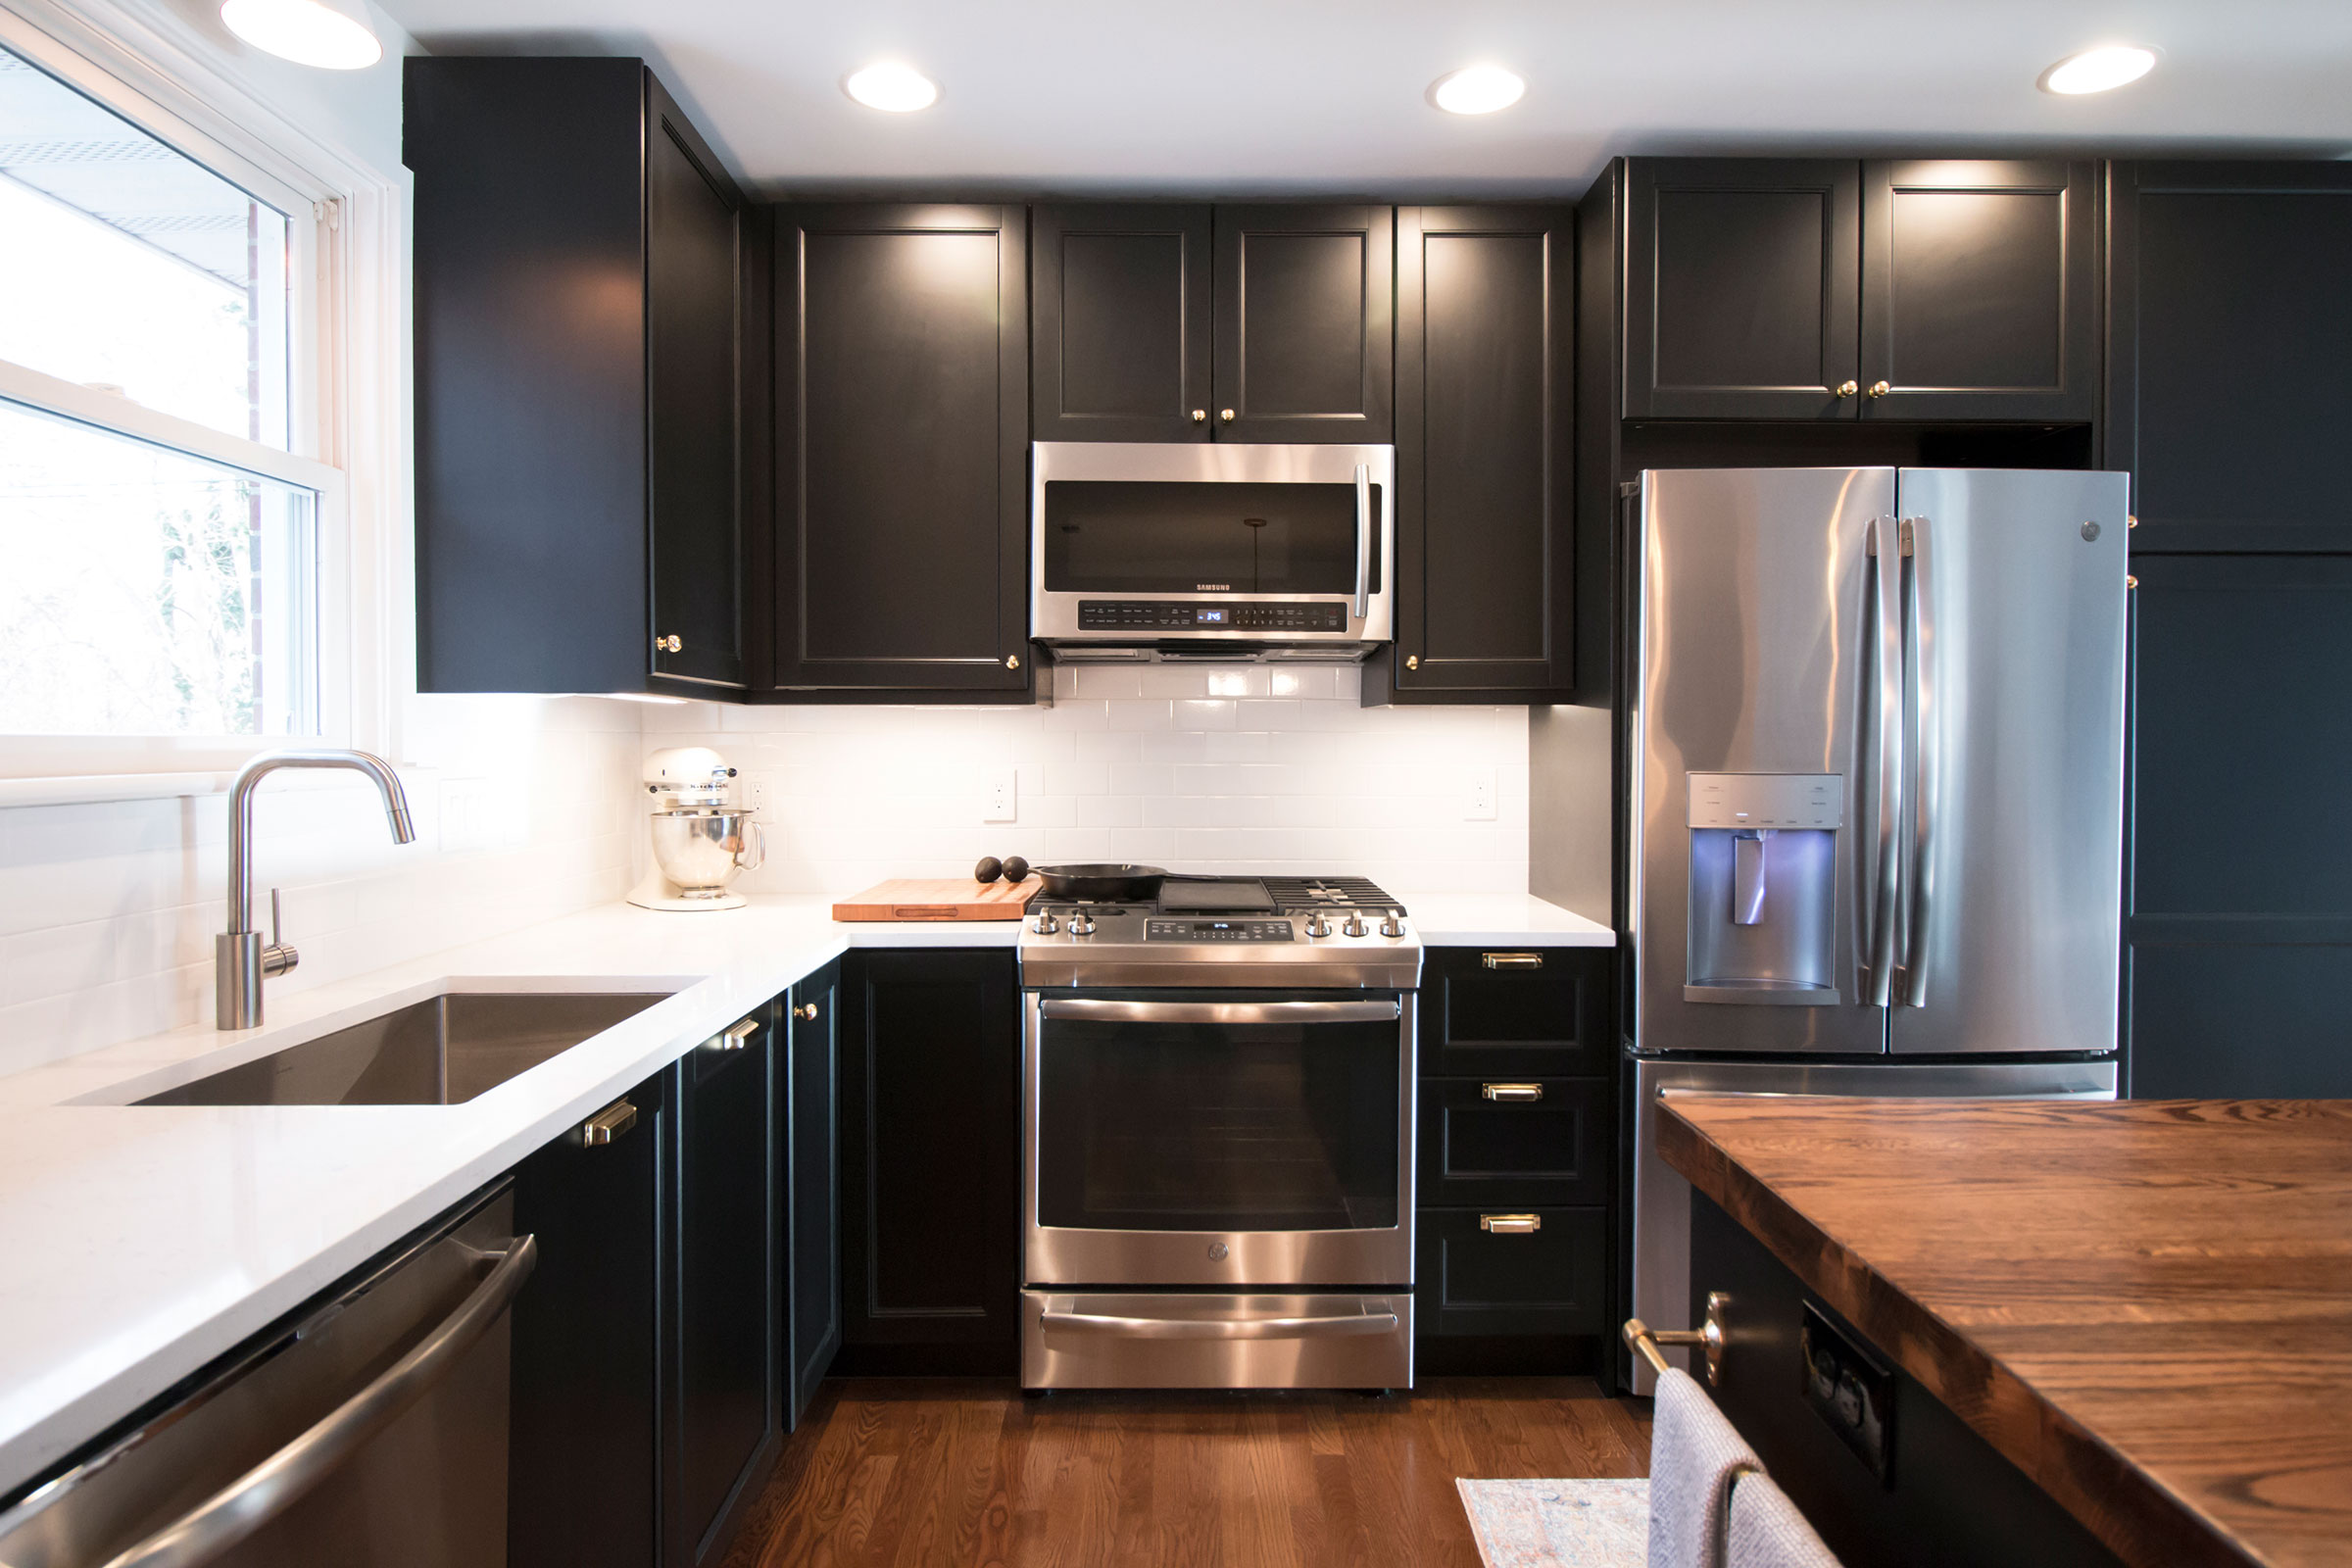 Featured Kitchen Remodel - This kitchen project was a two month project that consisted of fully gutting the previous kitchen, taking down load-bearing walls, installing structural beams, and all finish work.